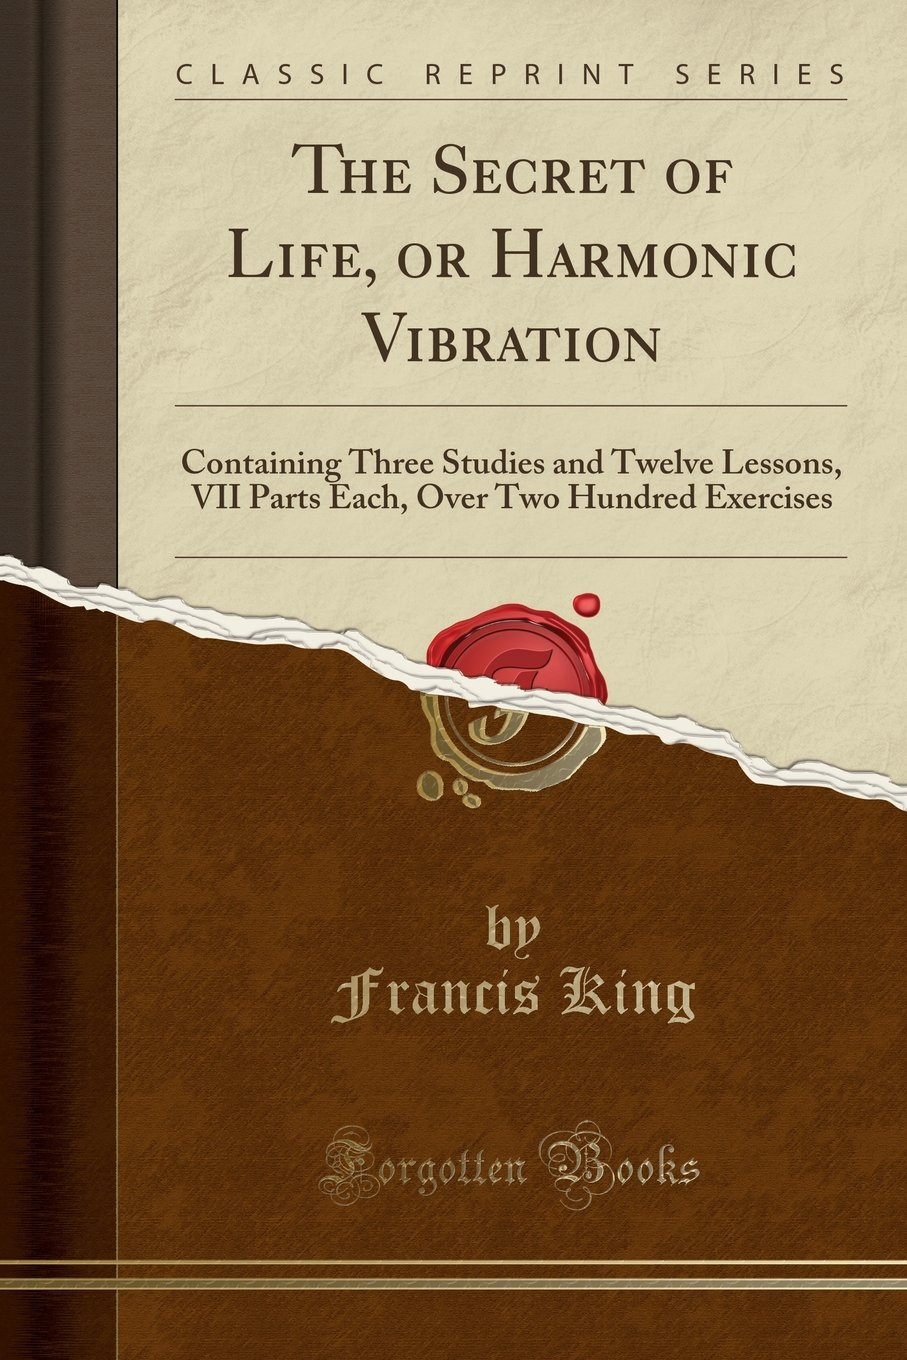 The Secret of Life, or Harmonic Vibration: Containing Three Studies and Twelve Lessons, VII Parts Each, Over Two Hundred Exercises (Classic Reprint) pdf